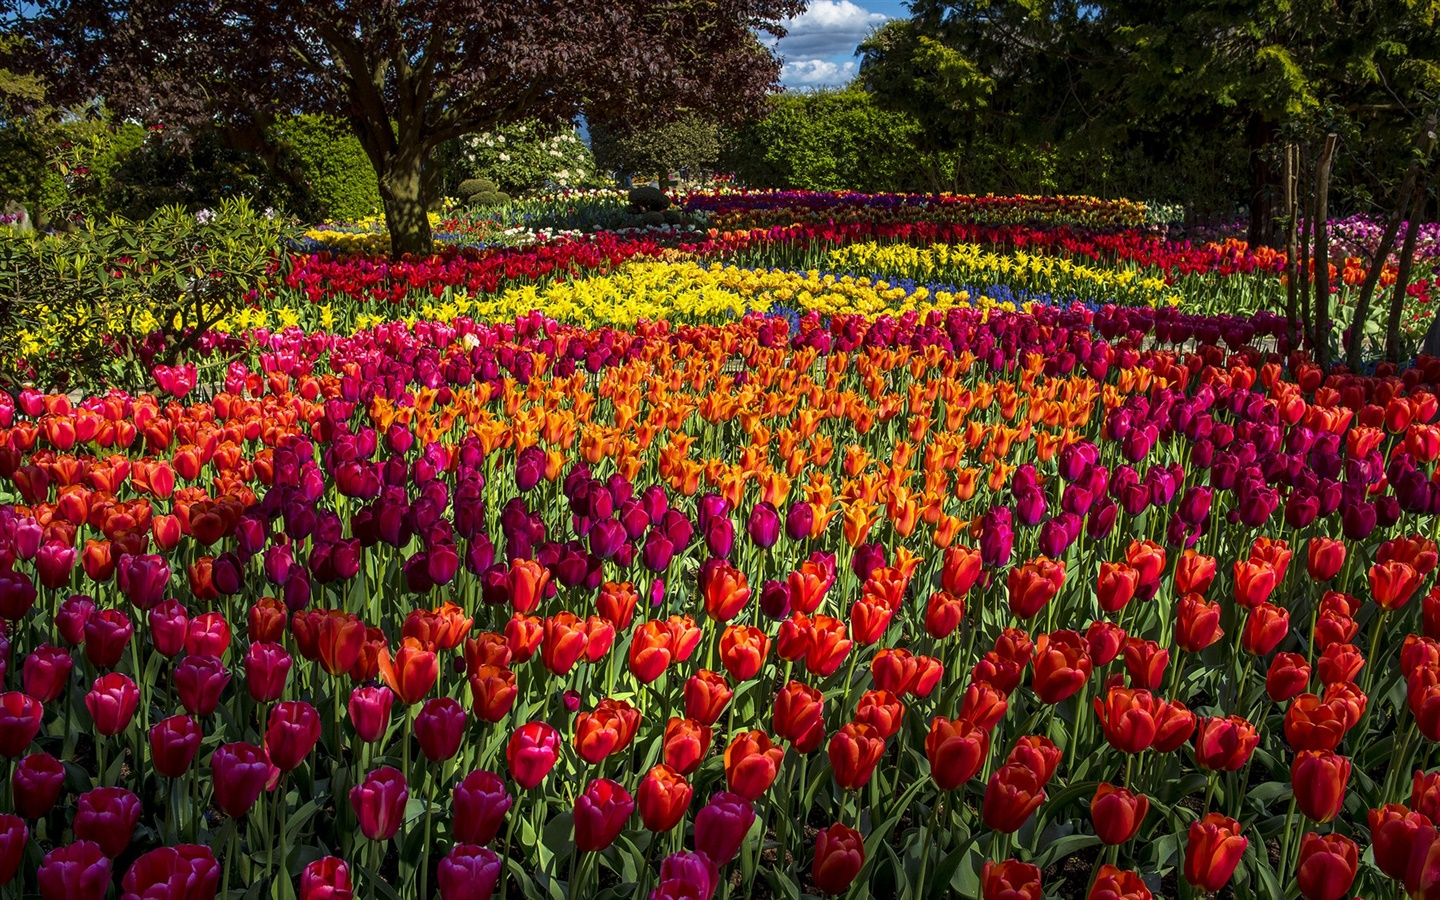 Tulips, colorful, trees, park 1440x900 wallpaper